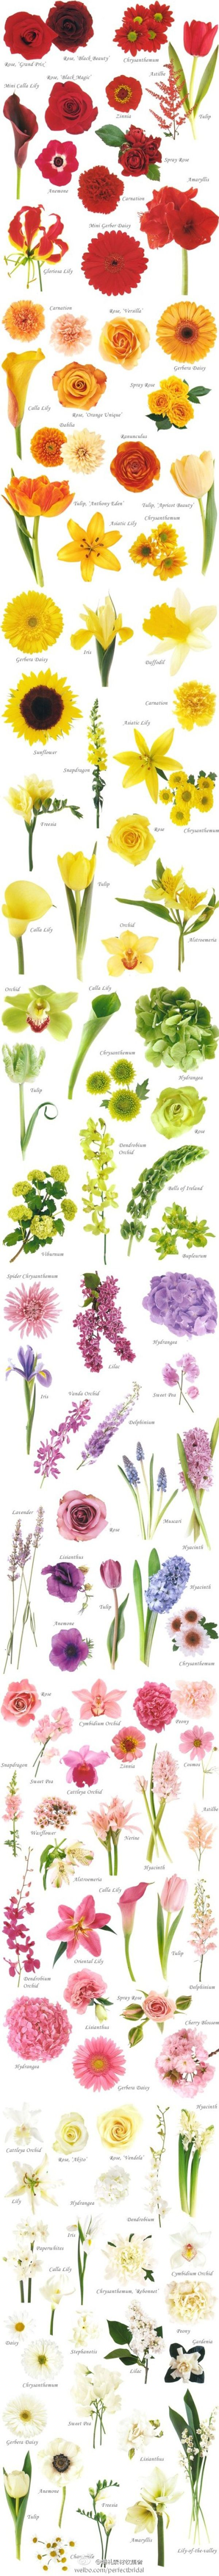 Picking flowers for your event.   flower chart by color #infographic